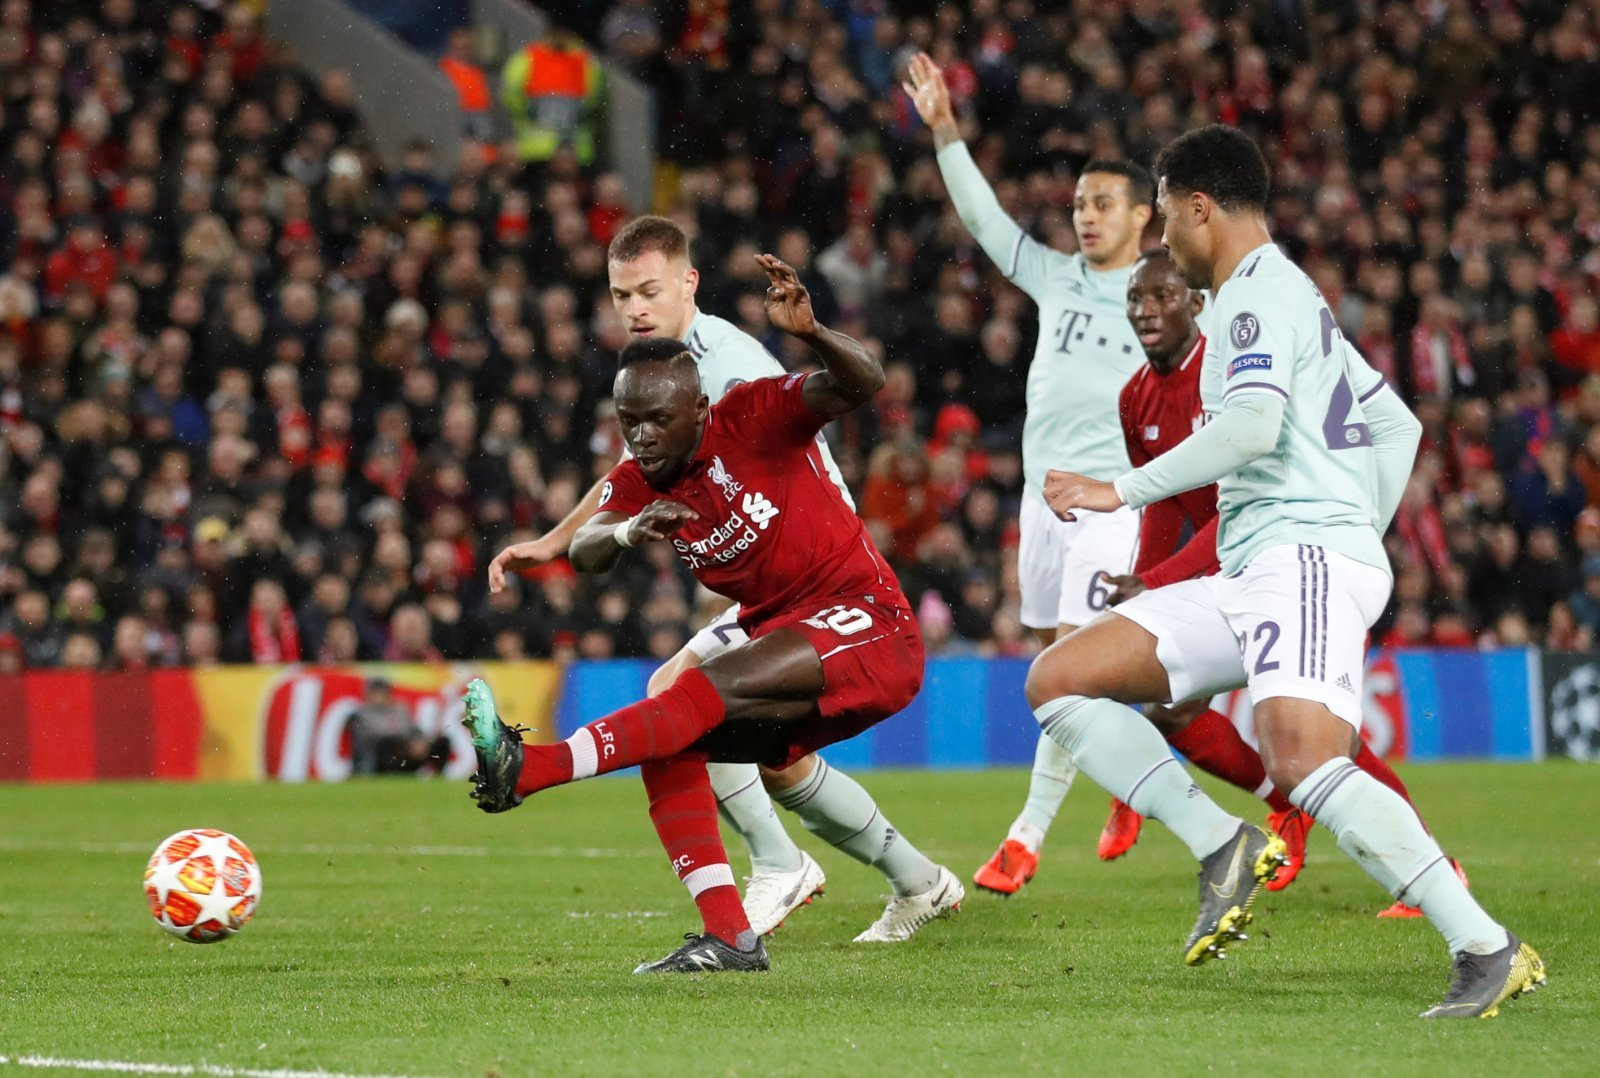 Sadio Mane's wastefulness could cost Liverpool after Bayern draw